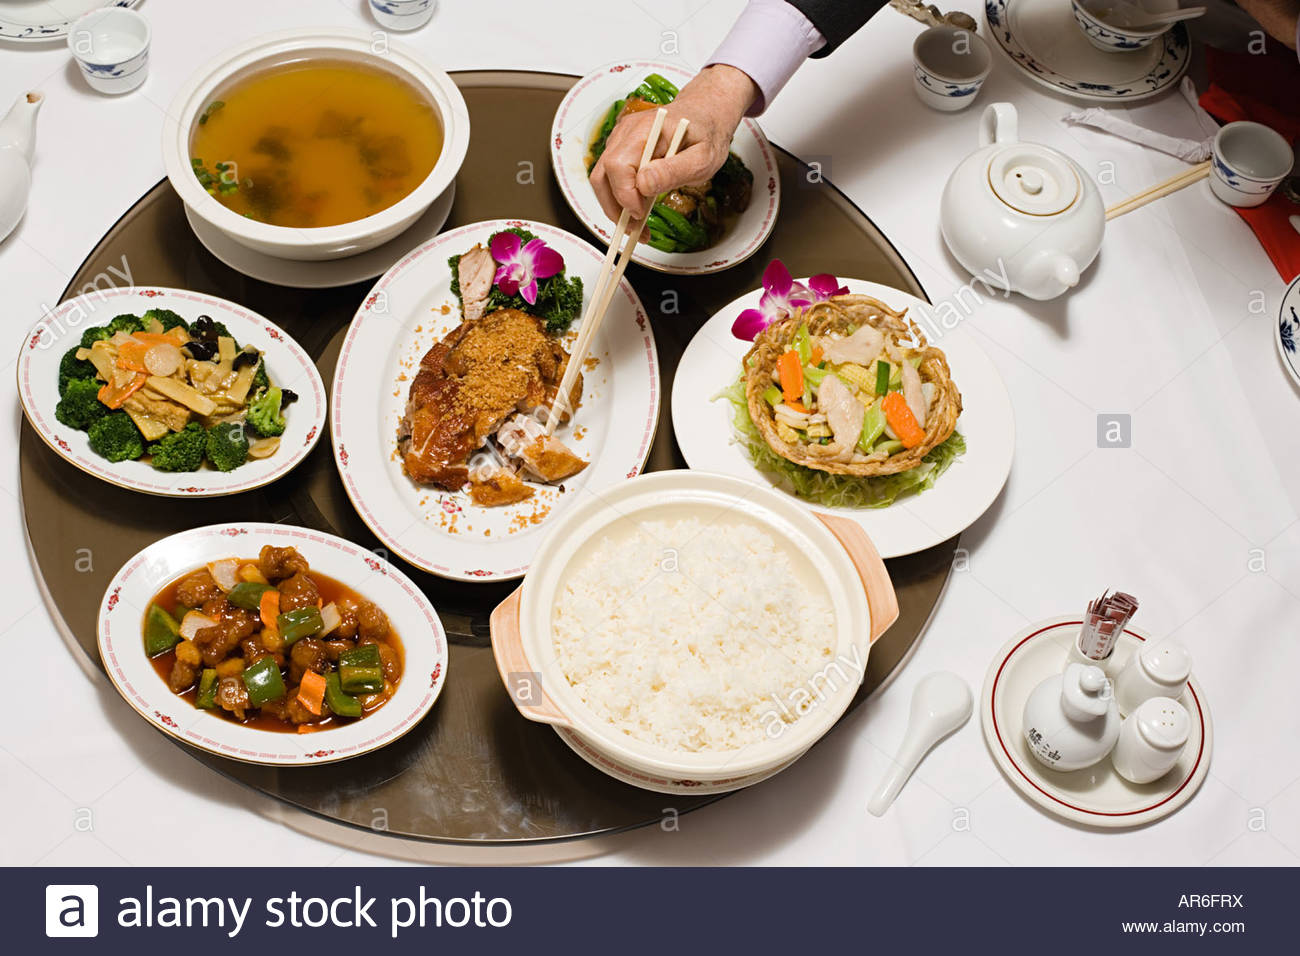 Chinese meal - Stock Image